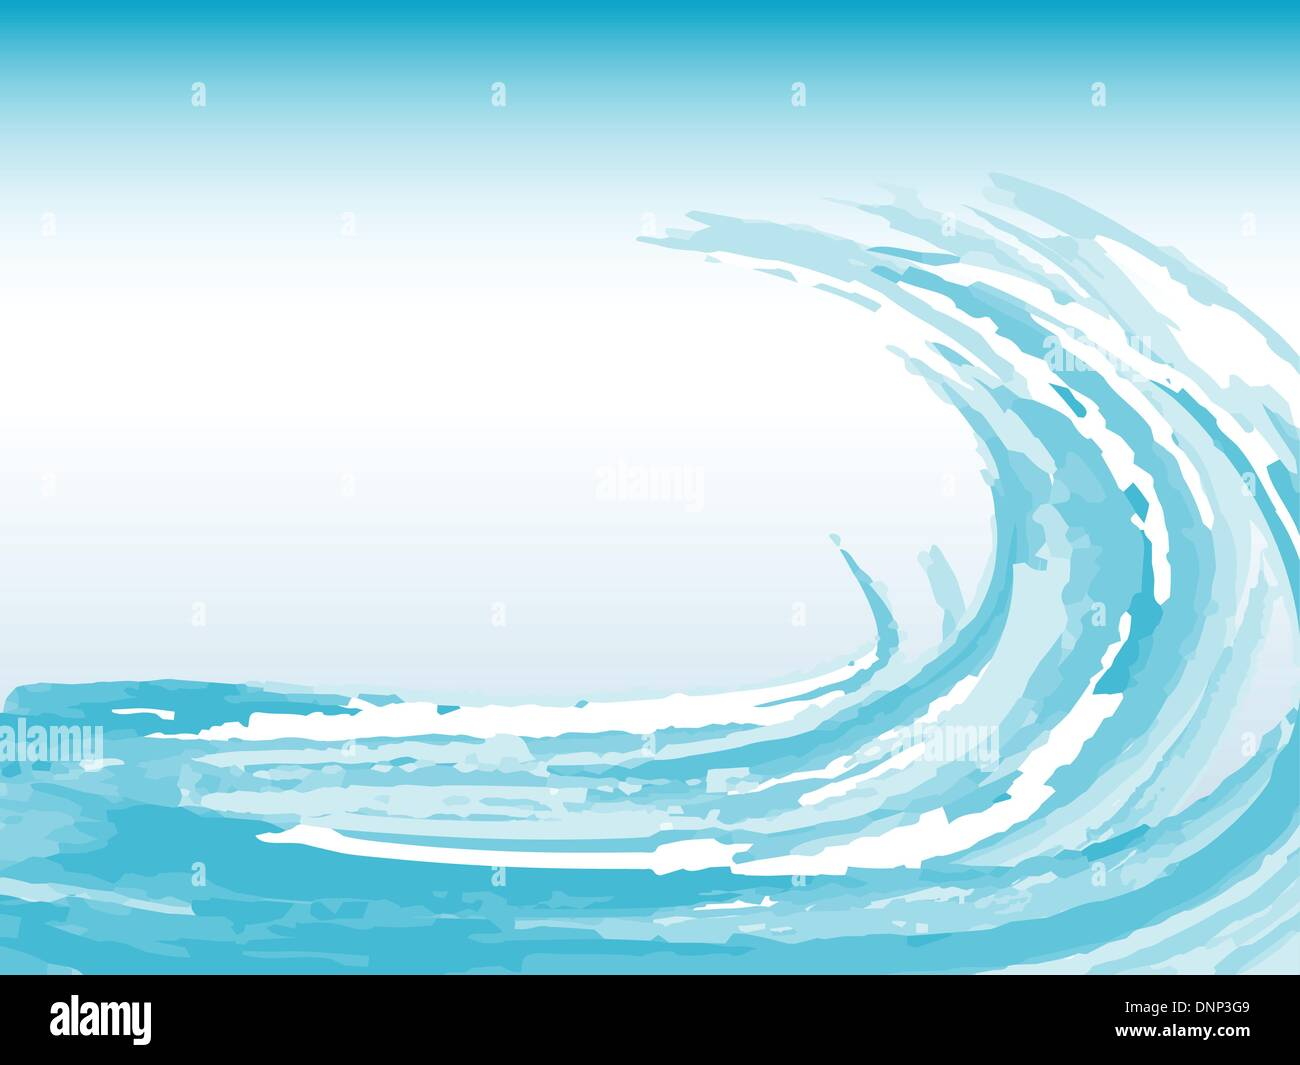 Abstract wave background - Stock Image